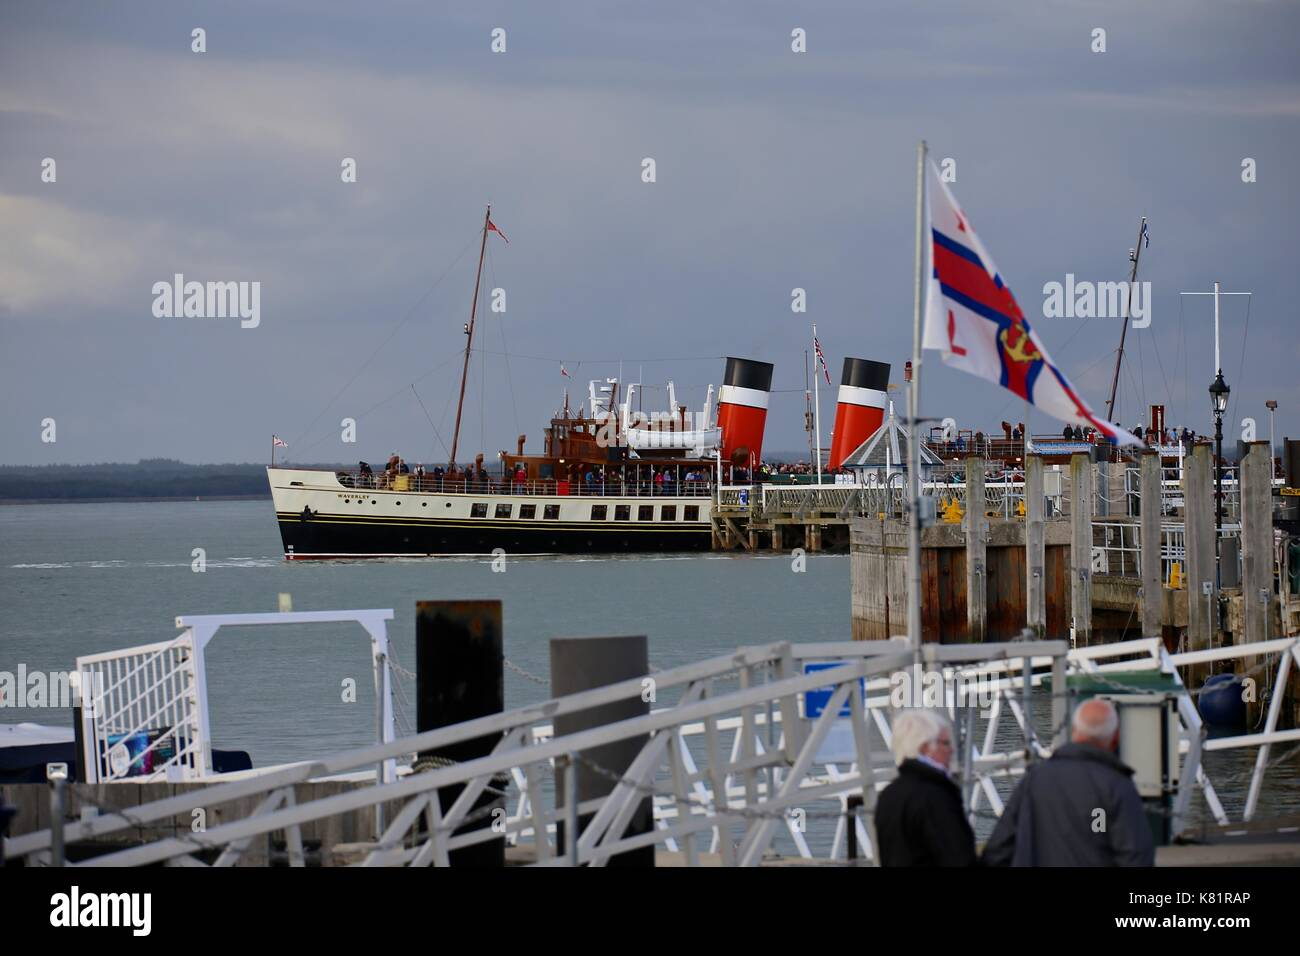 the Waverley - Stock Image